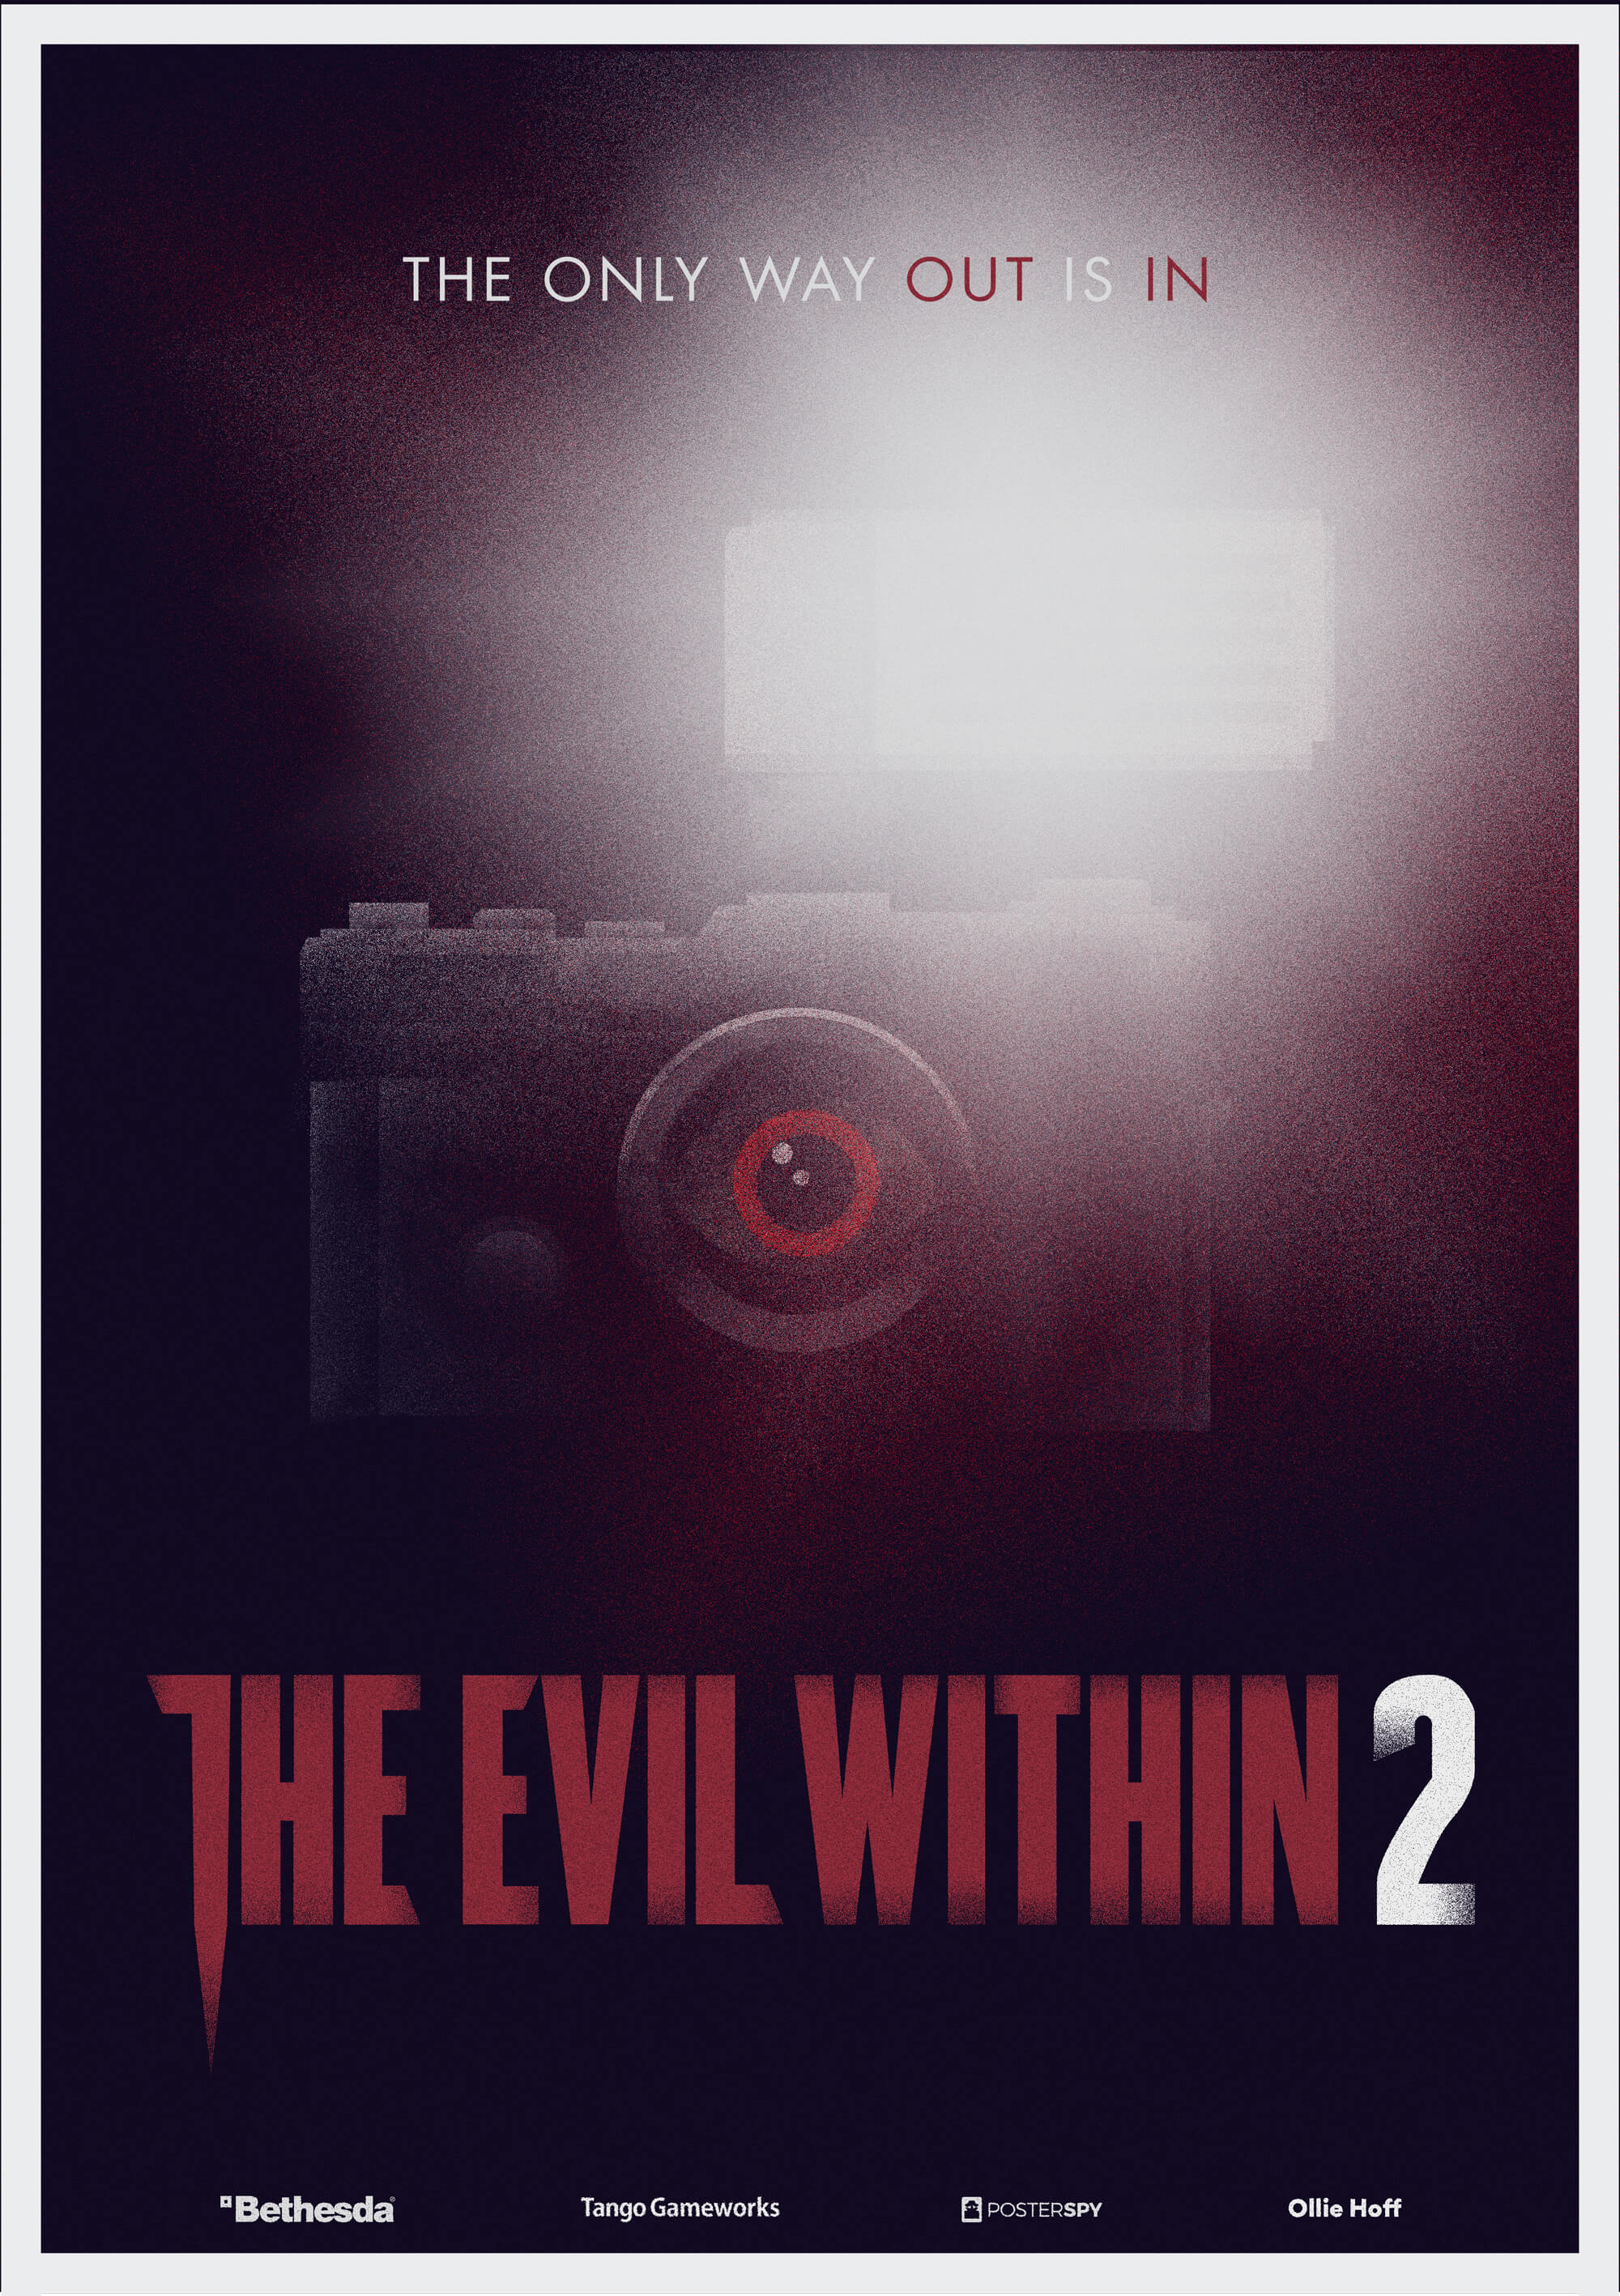 Evil_within_2_final_small